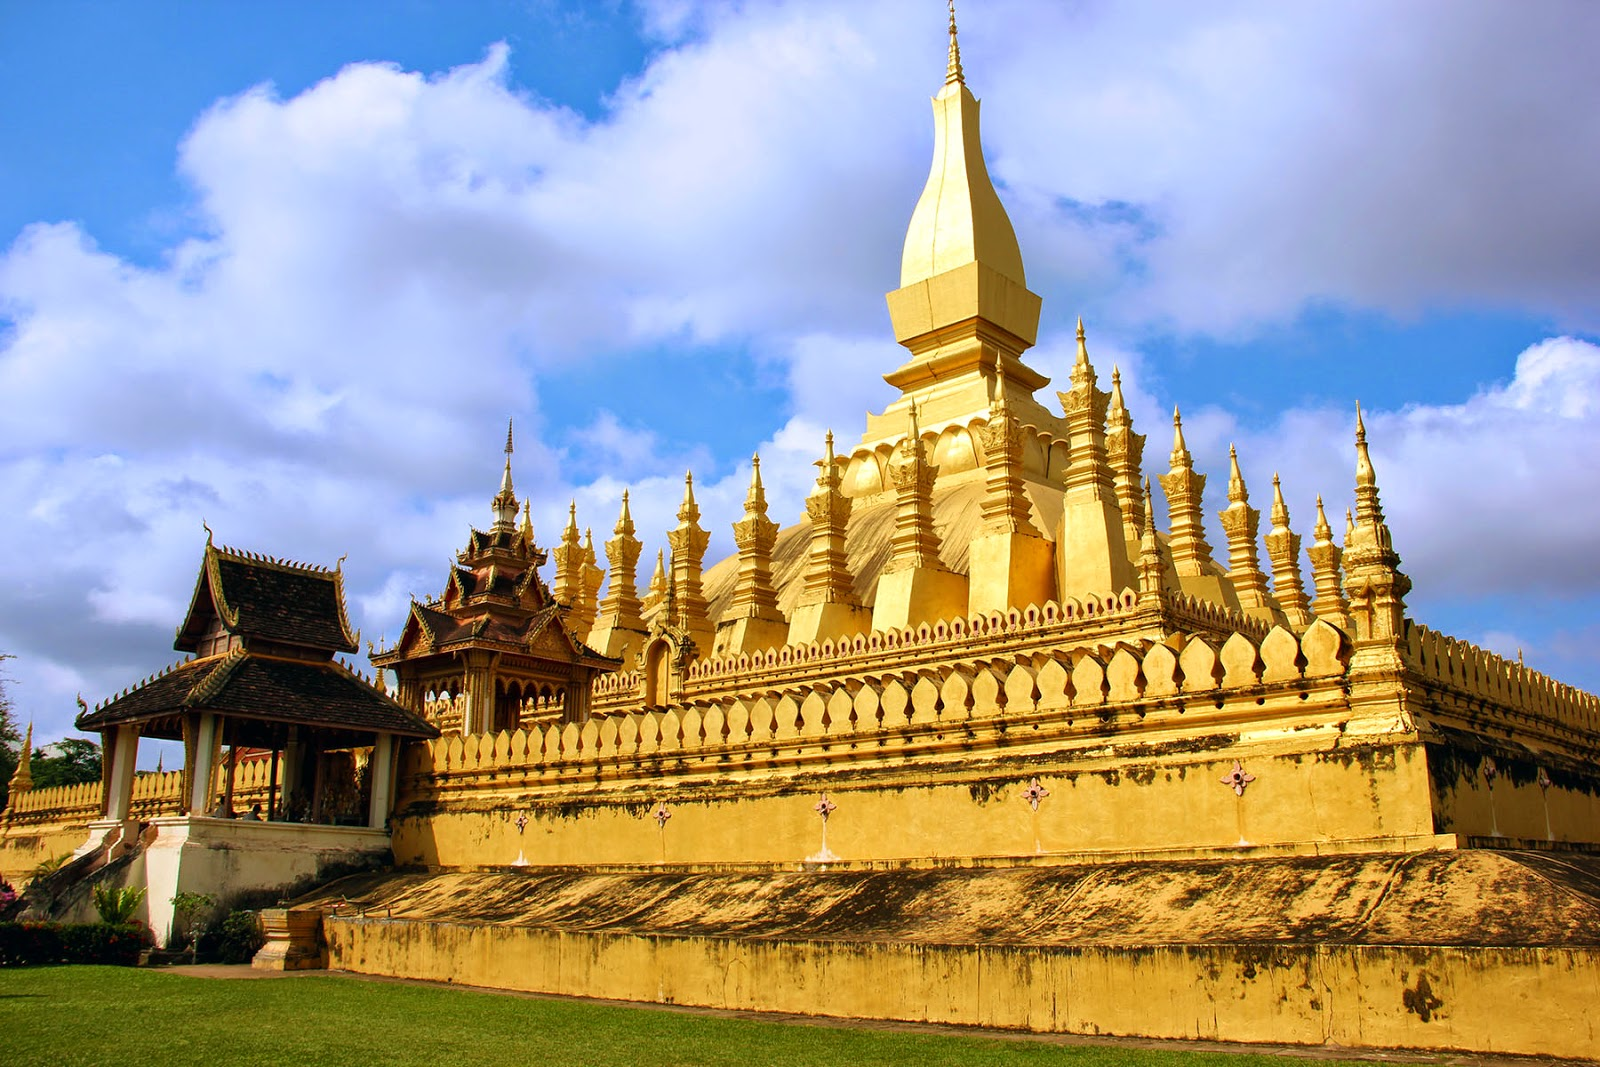 Pha That Luang Temple - Great golden stupa in Vientiane